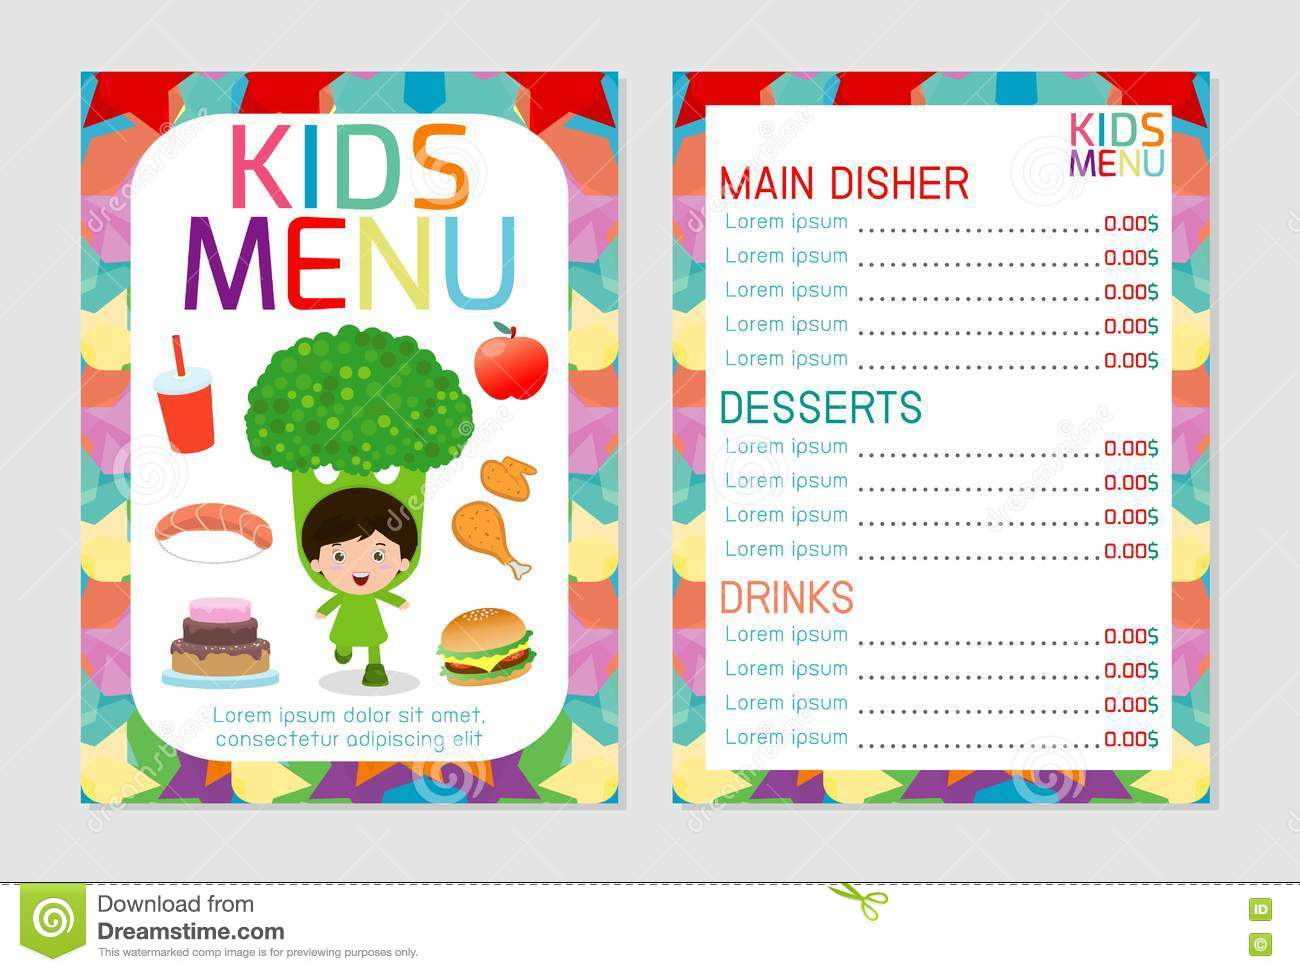 Cute Colorful Kids Meal Menu Vector Template, Kids Menu, Cute Colorful Kids  Meal Menu Design. Cartoon, Banner.  Kids Menu Templates